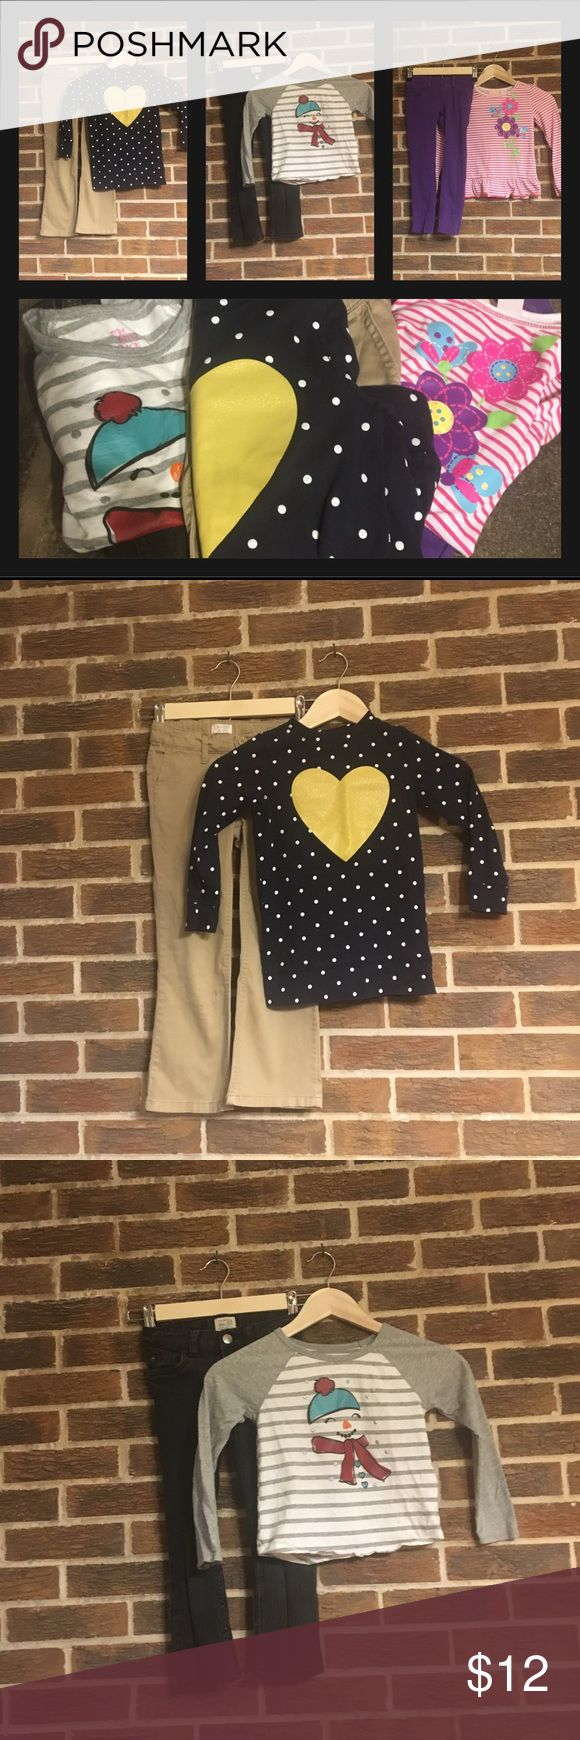 ⭐️$5 Final price drop All outfits are size 5. Pants- black & khaki pants are children's Place, and purple pants are jumping Bean Tops- snowman is Childrens Place, blue with gold heart is Osh Kosh and pink stripe is Kids Headquarters. These clothes have been worn and are not in brand new condition but there is still wear in them and they are priced to sell. osh kosh, childrens place, kids headquarters Matching Sets